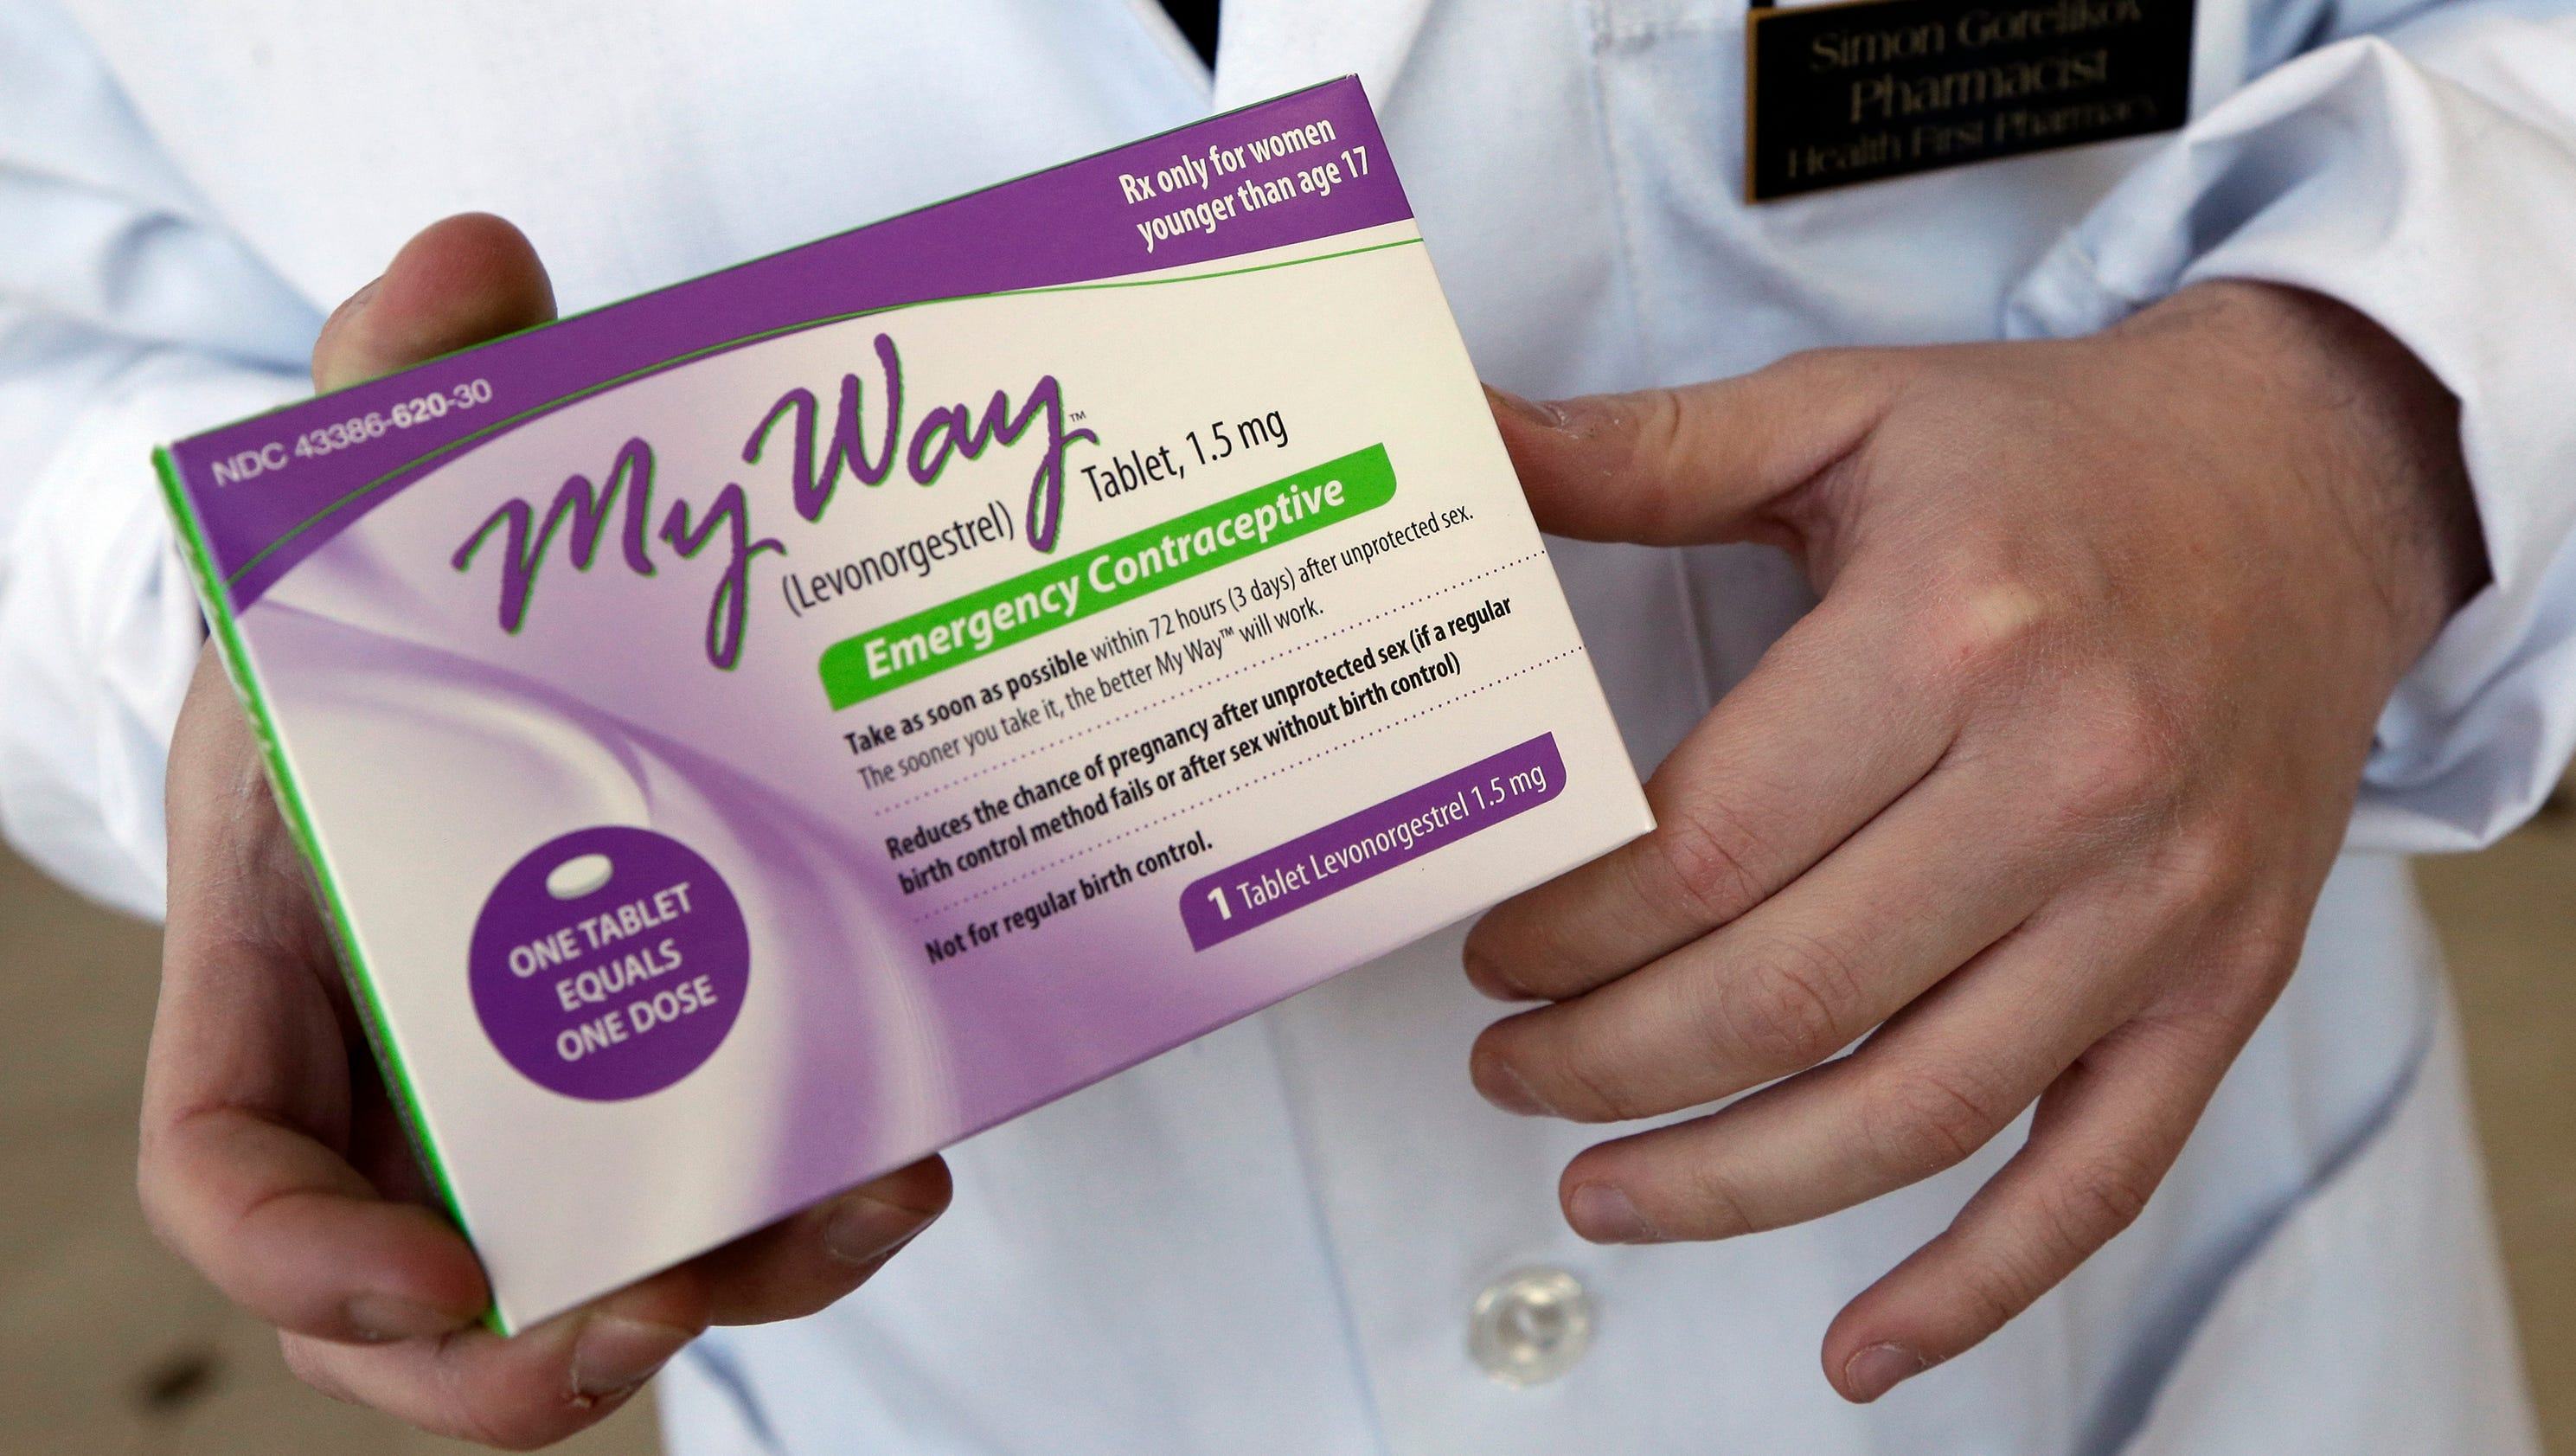 wisconsin fines 22 hospitals over not offering emergency contraception to rape victims